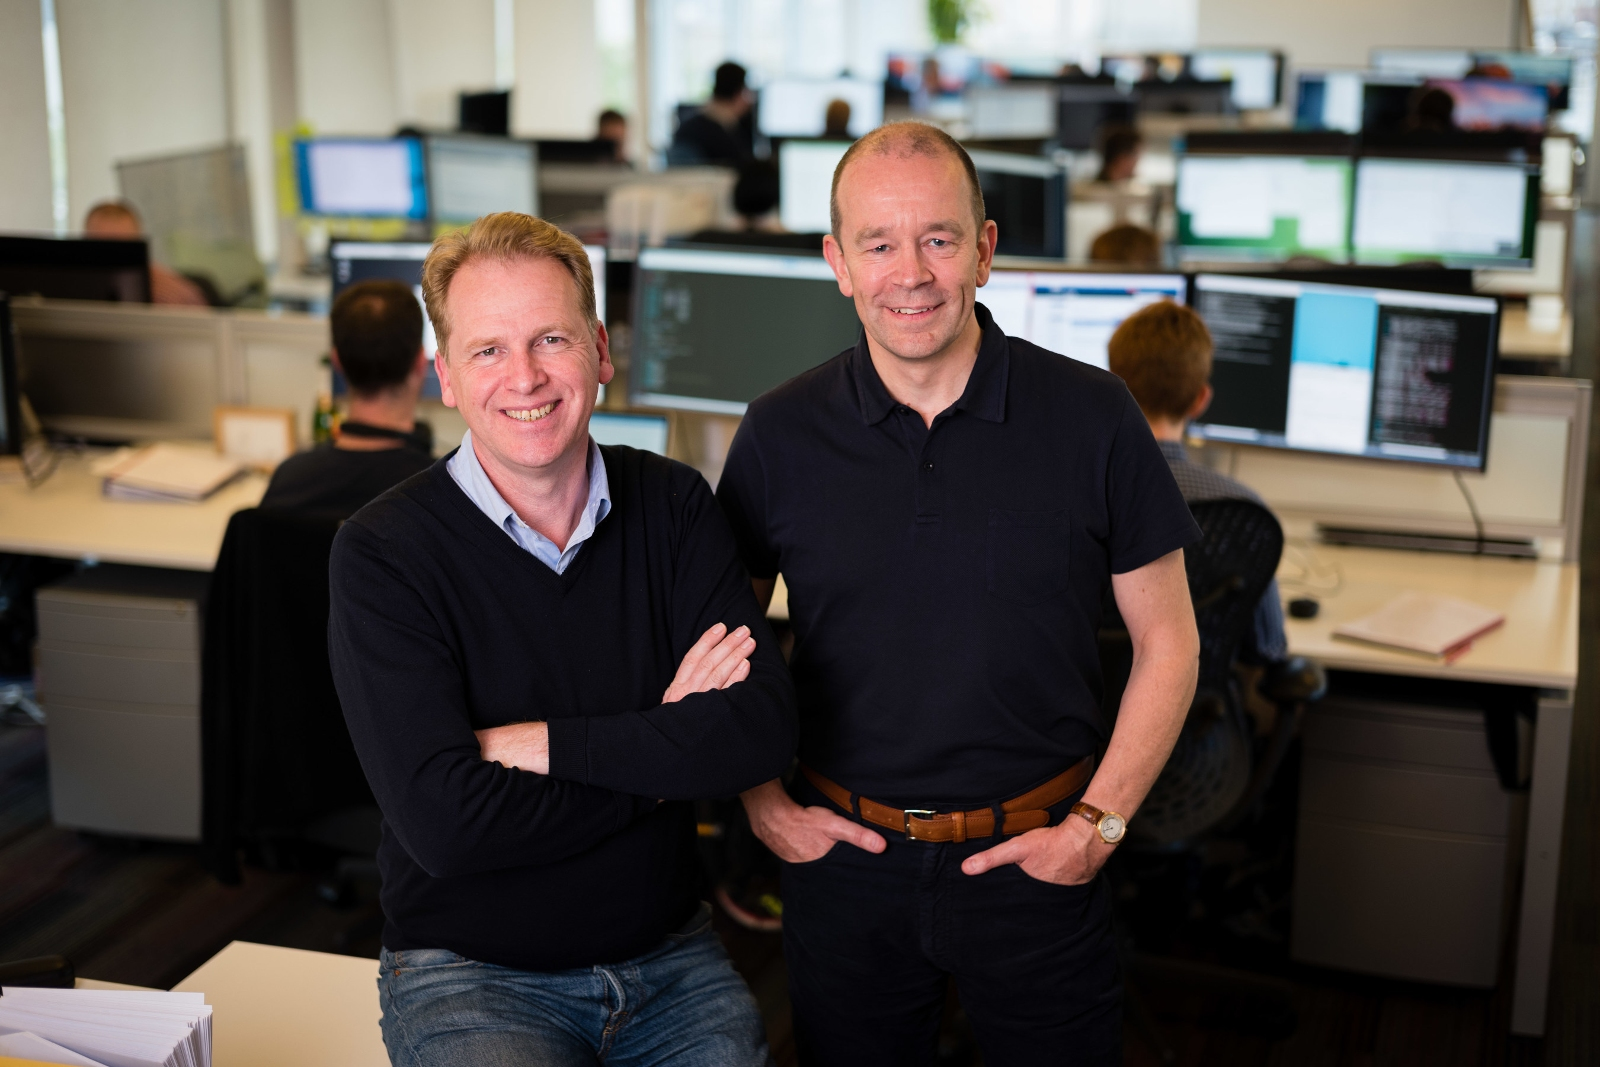 Graphcore founders Nigel Toon, CEO, on left, and Simon Knowles, CTO on right